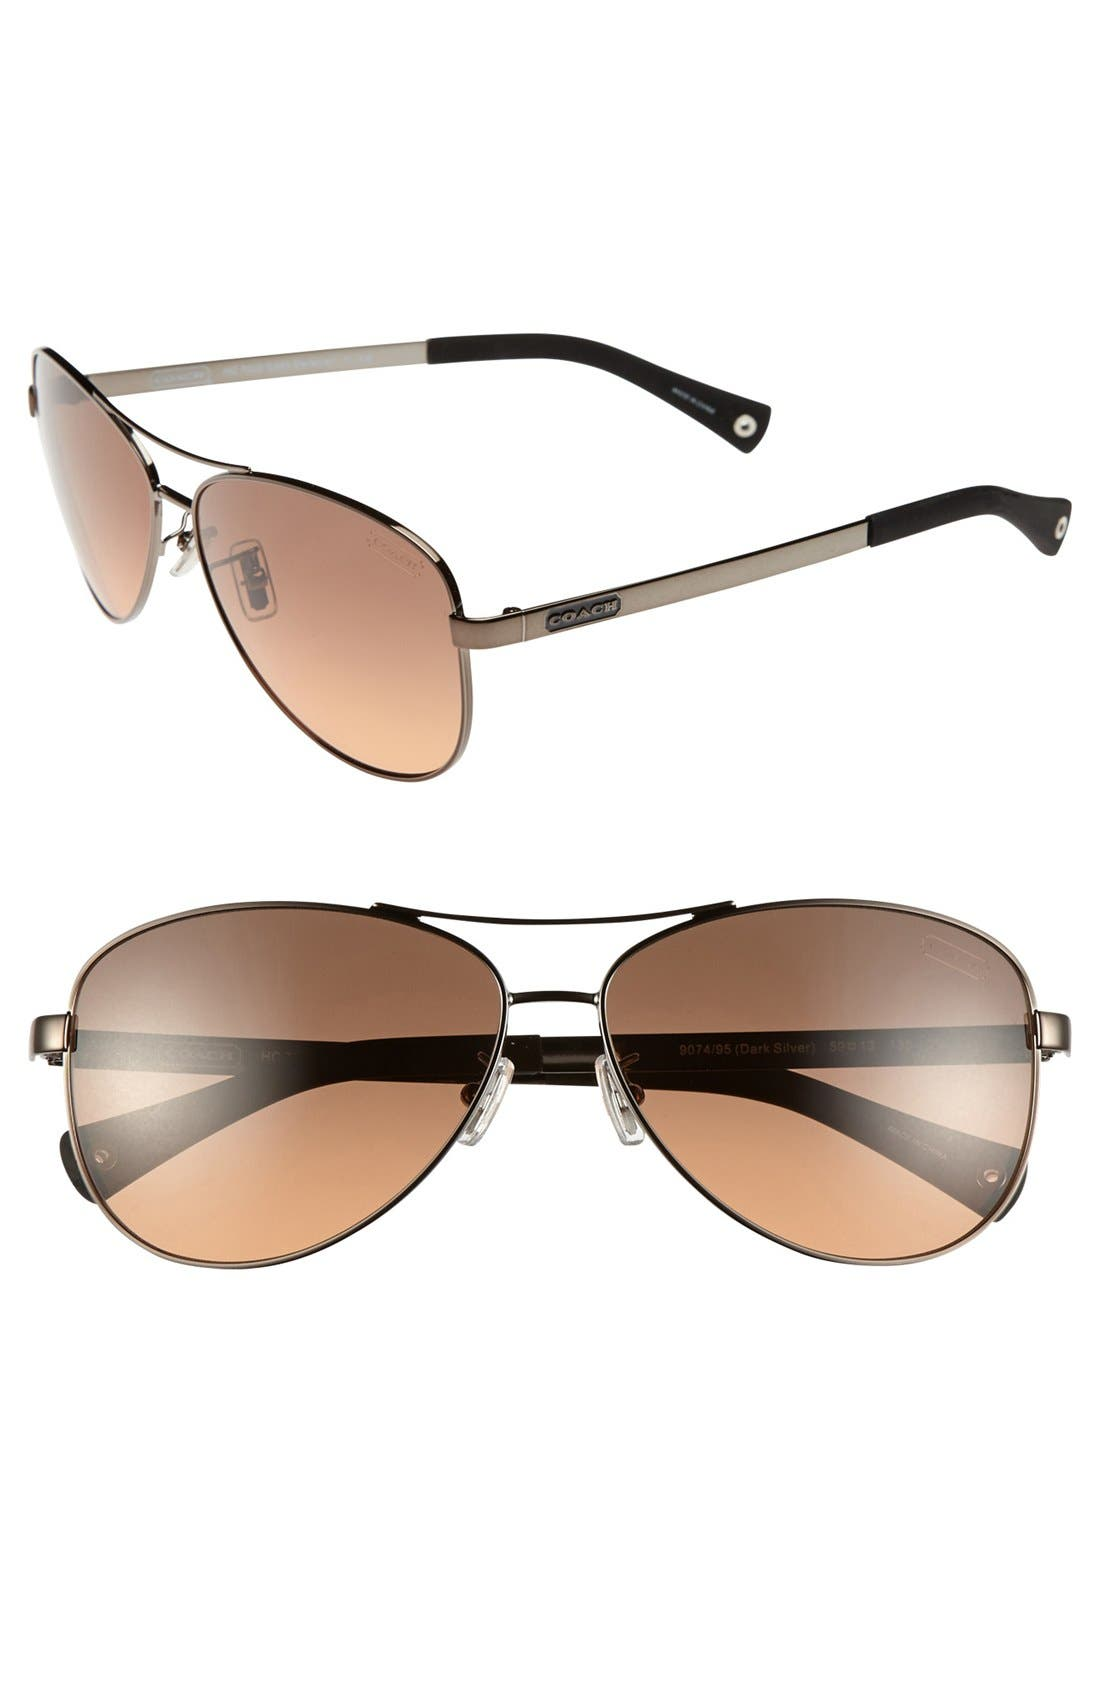 Main Image - COACH 59mm Aviator Sunglasses